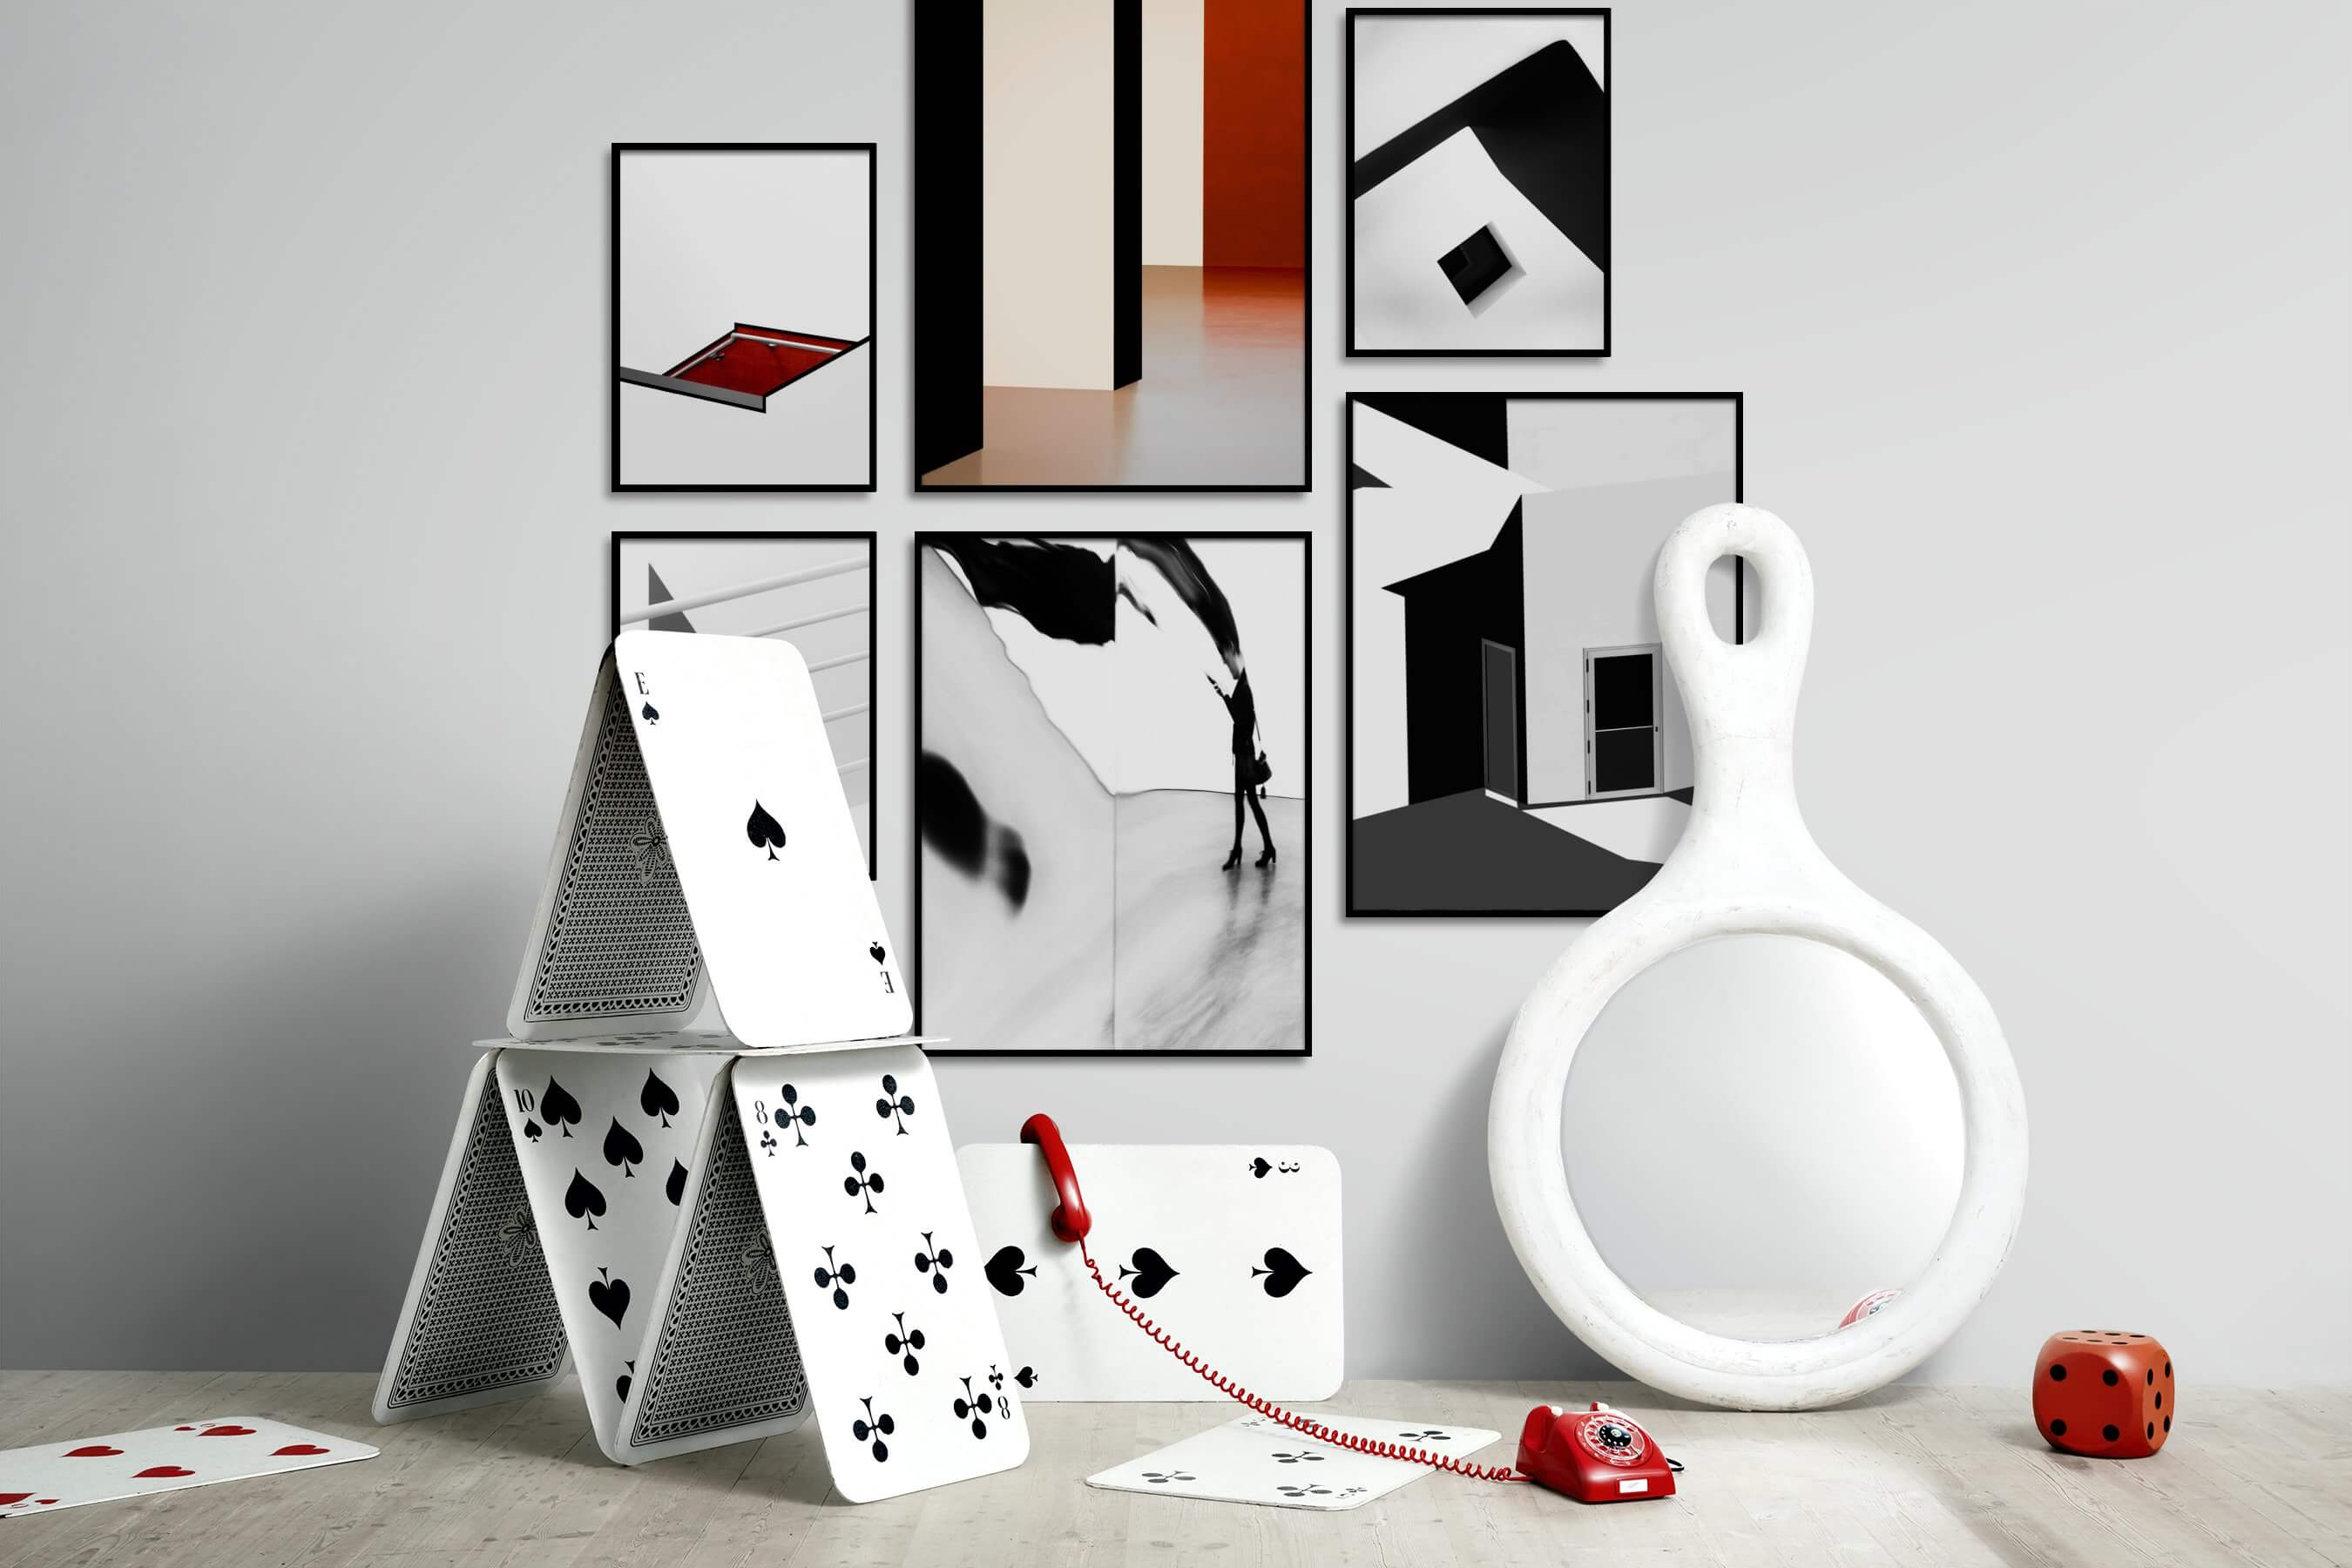 Gallery wall idea with six framed pictures arranged on a wall depicting Bright Tones, For the Minimalist, Black & White, For the Moderate, and Artsy